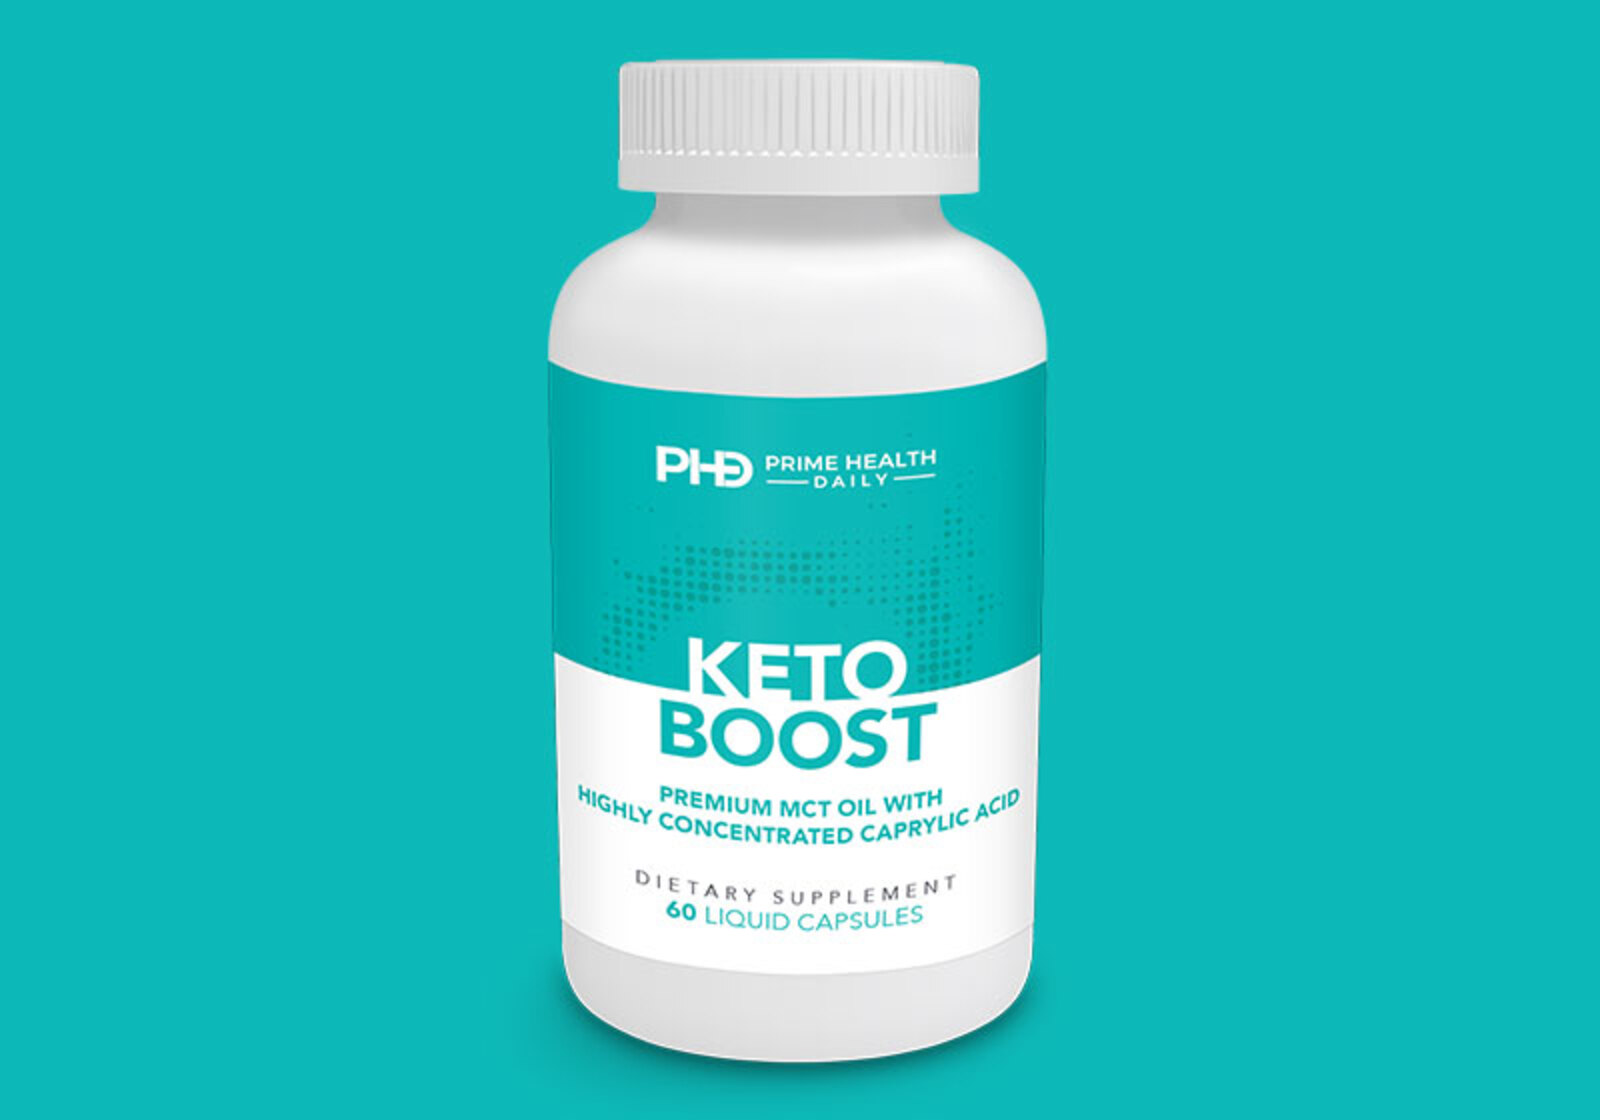 KetoBOOST Reviews